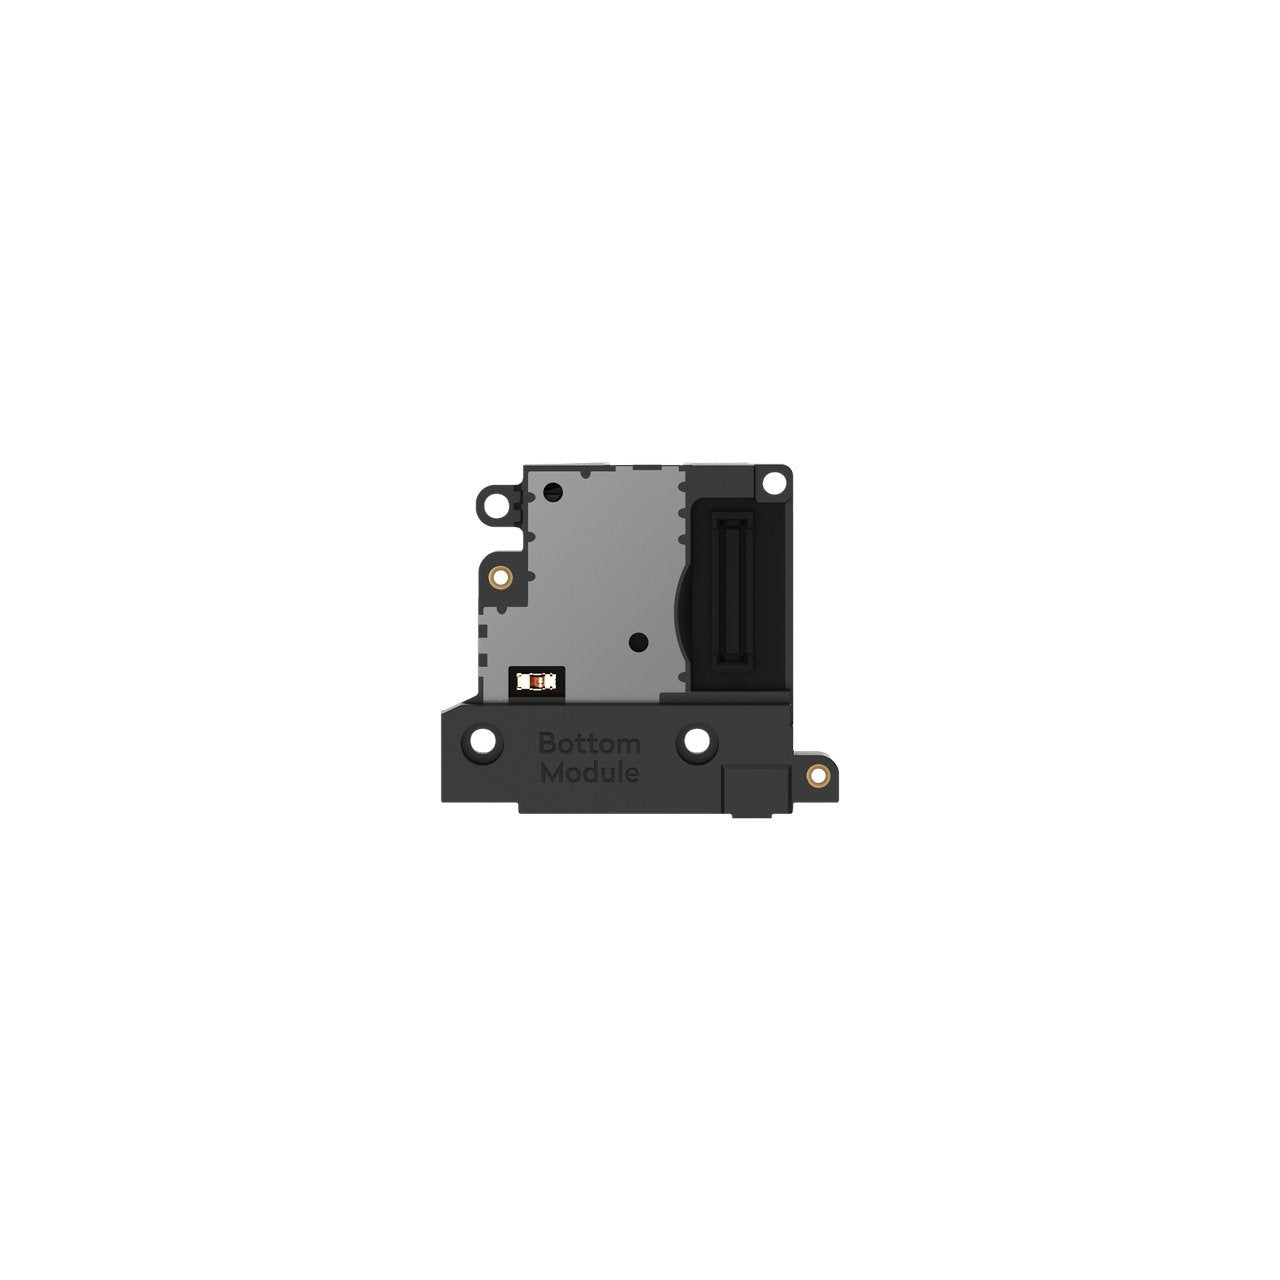 Fairphone 3 Bottom Module